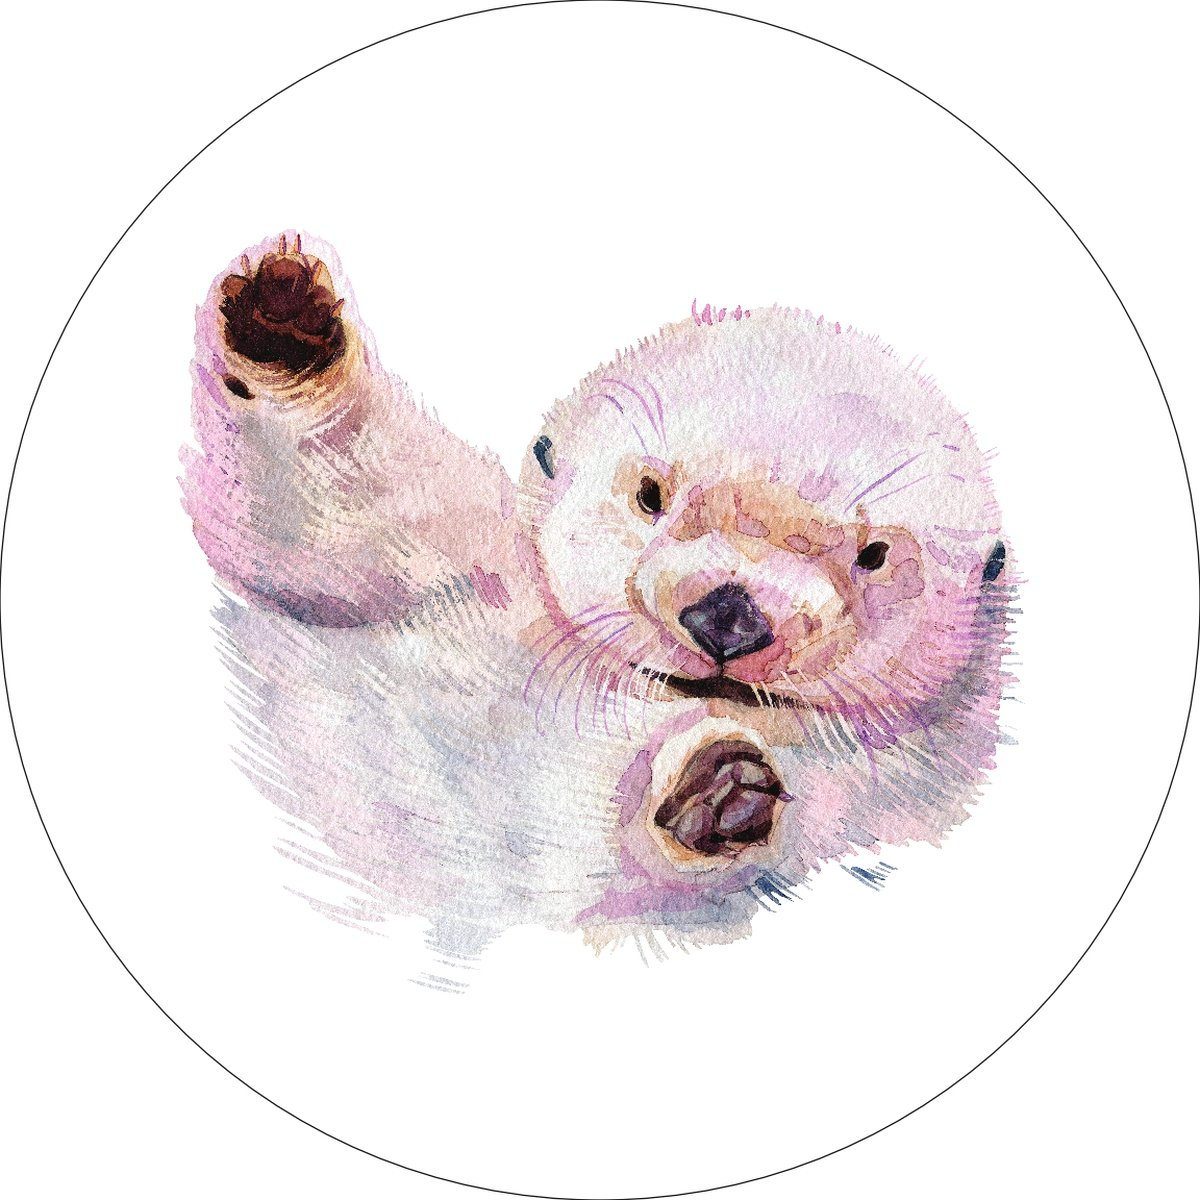 Sea Otter Home Wall Shelf Decor Animal Decorations Watercolor Round Sign - 12 Inch, Metal